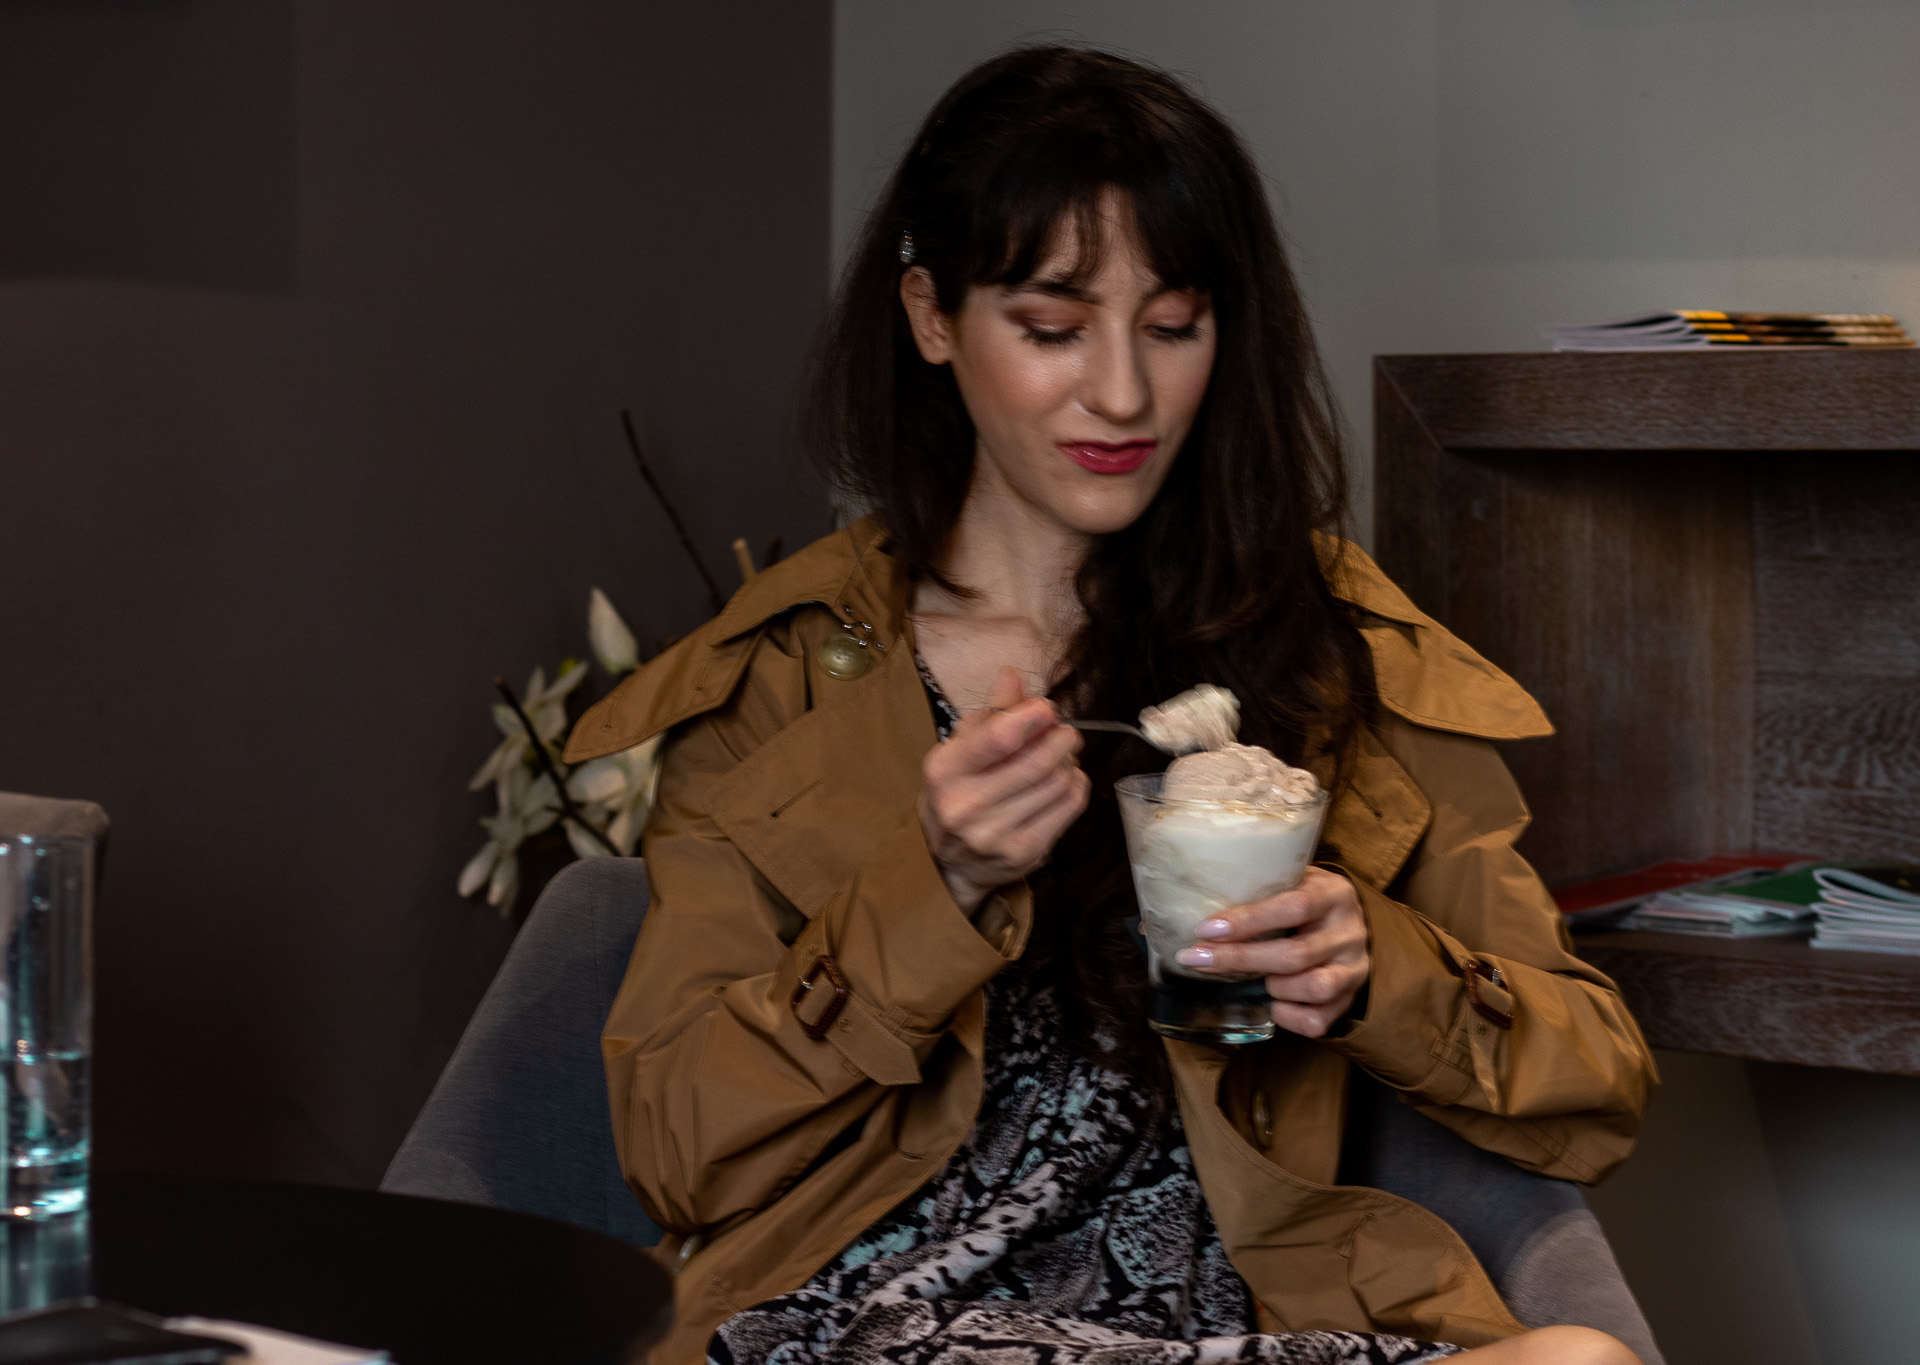 Fashion blogger Veronika Lipar of Brunette from Wall Street wearing Burberry trench coat short snakeskin dress eating ice cream on a date with BFFs